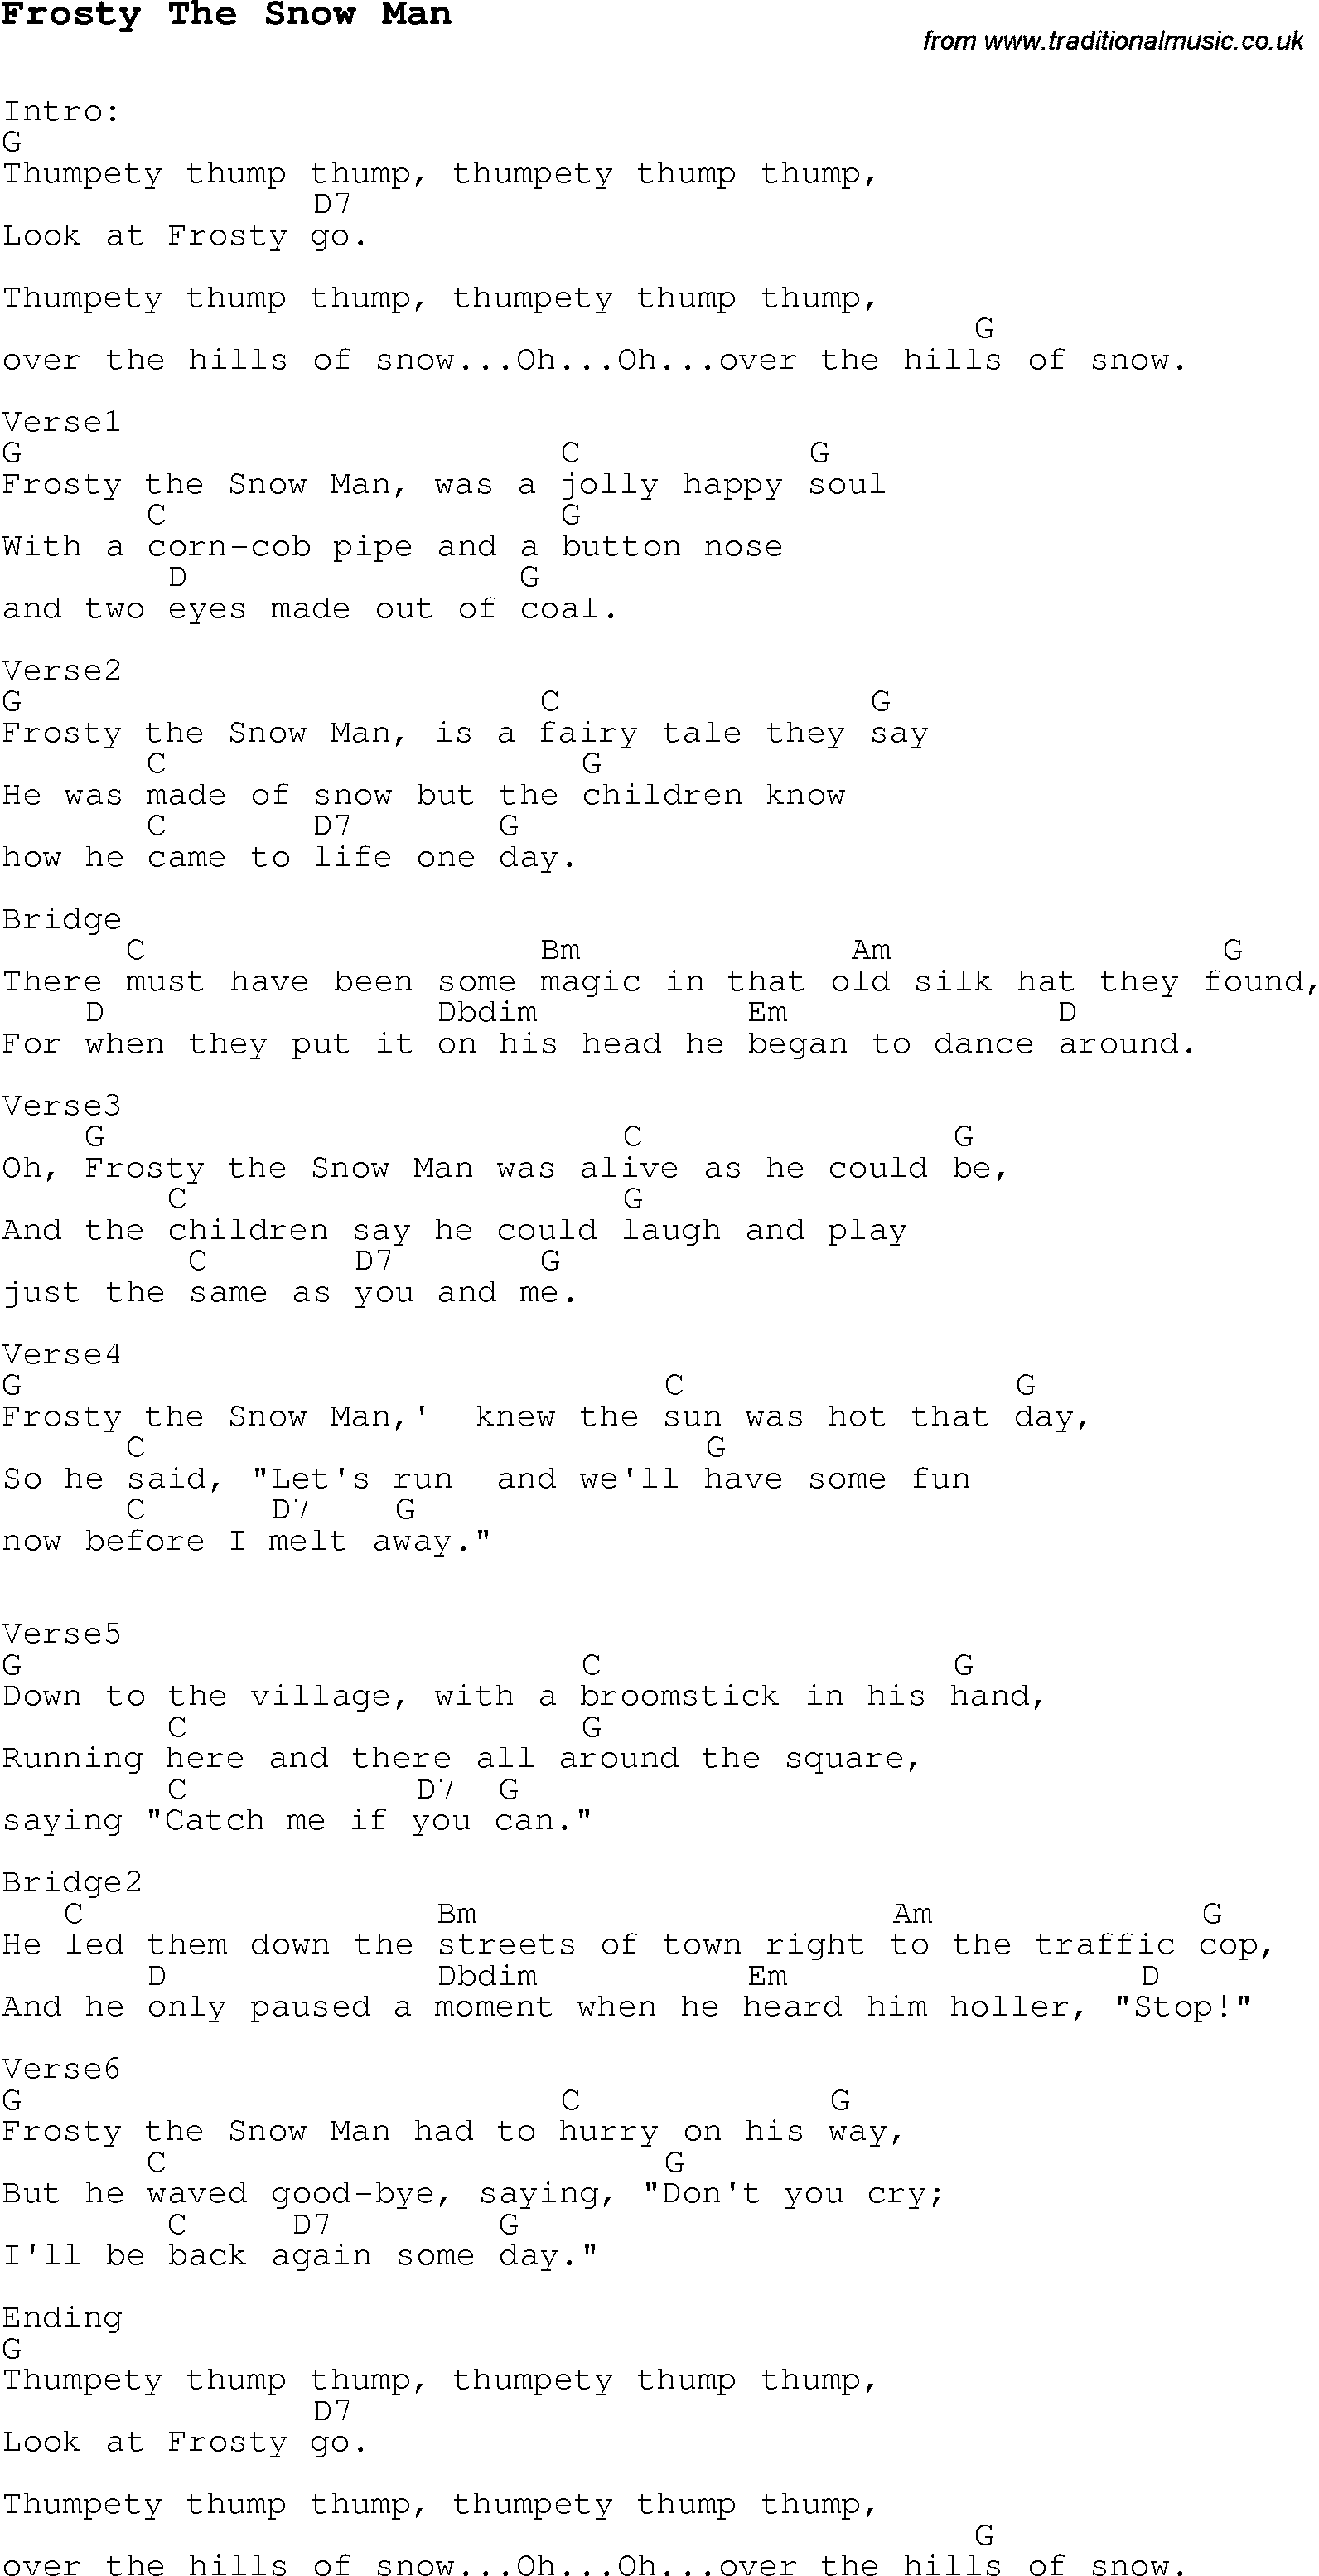 just meet me halfway lyrics and chords